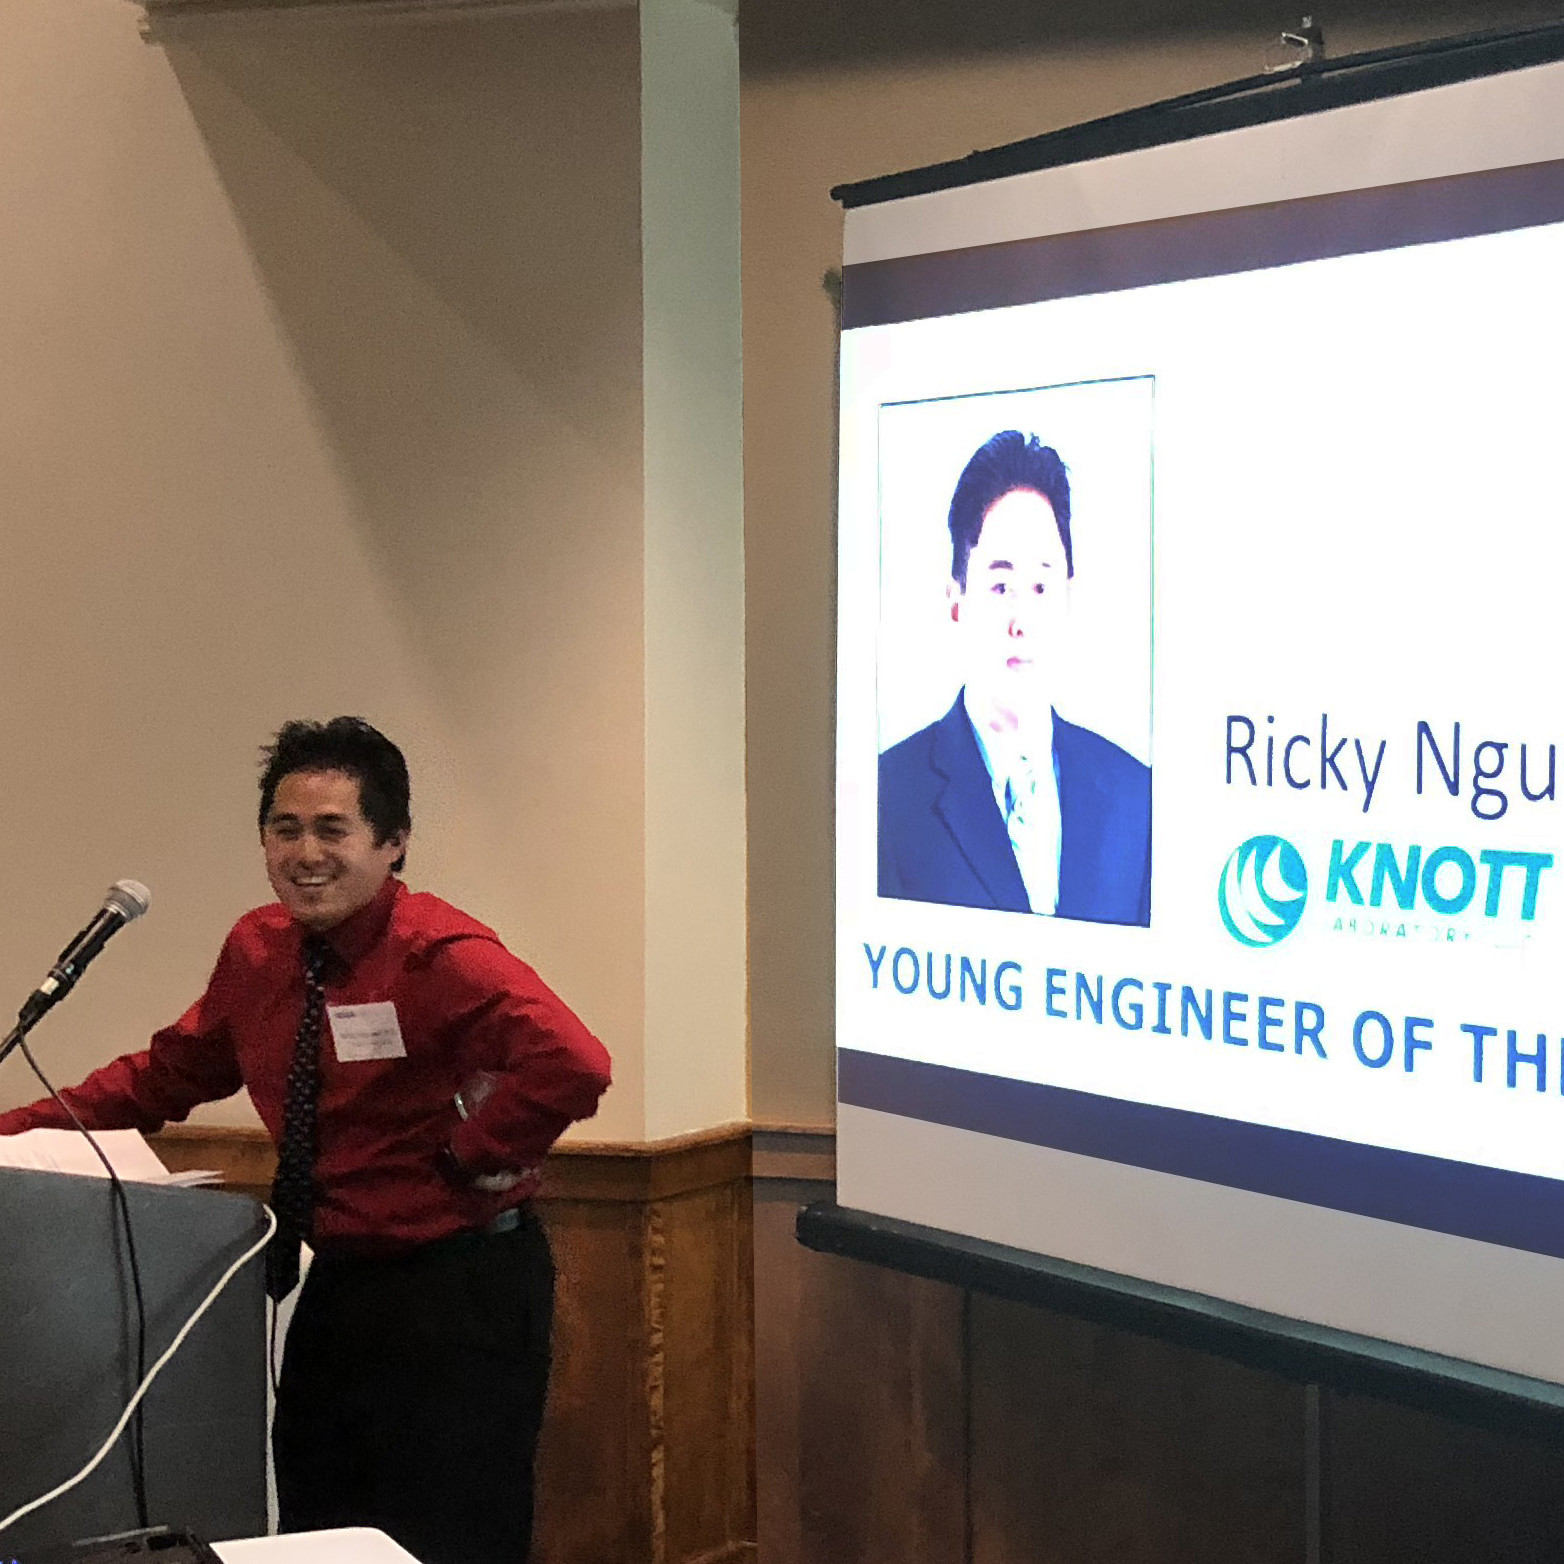 Ricky Nguyen accepting Engineer of the Year award